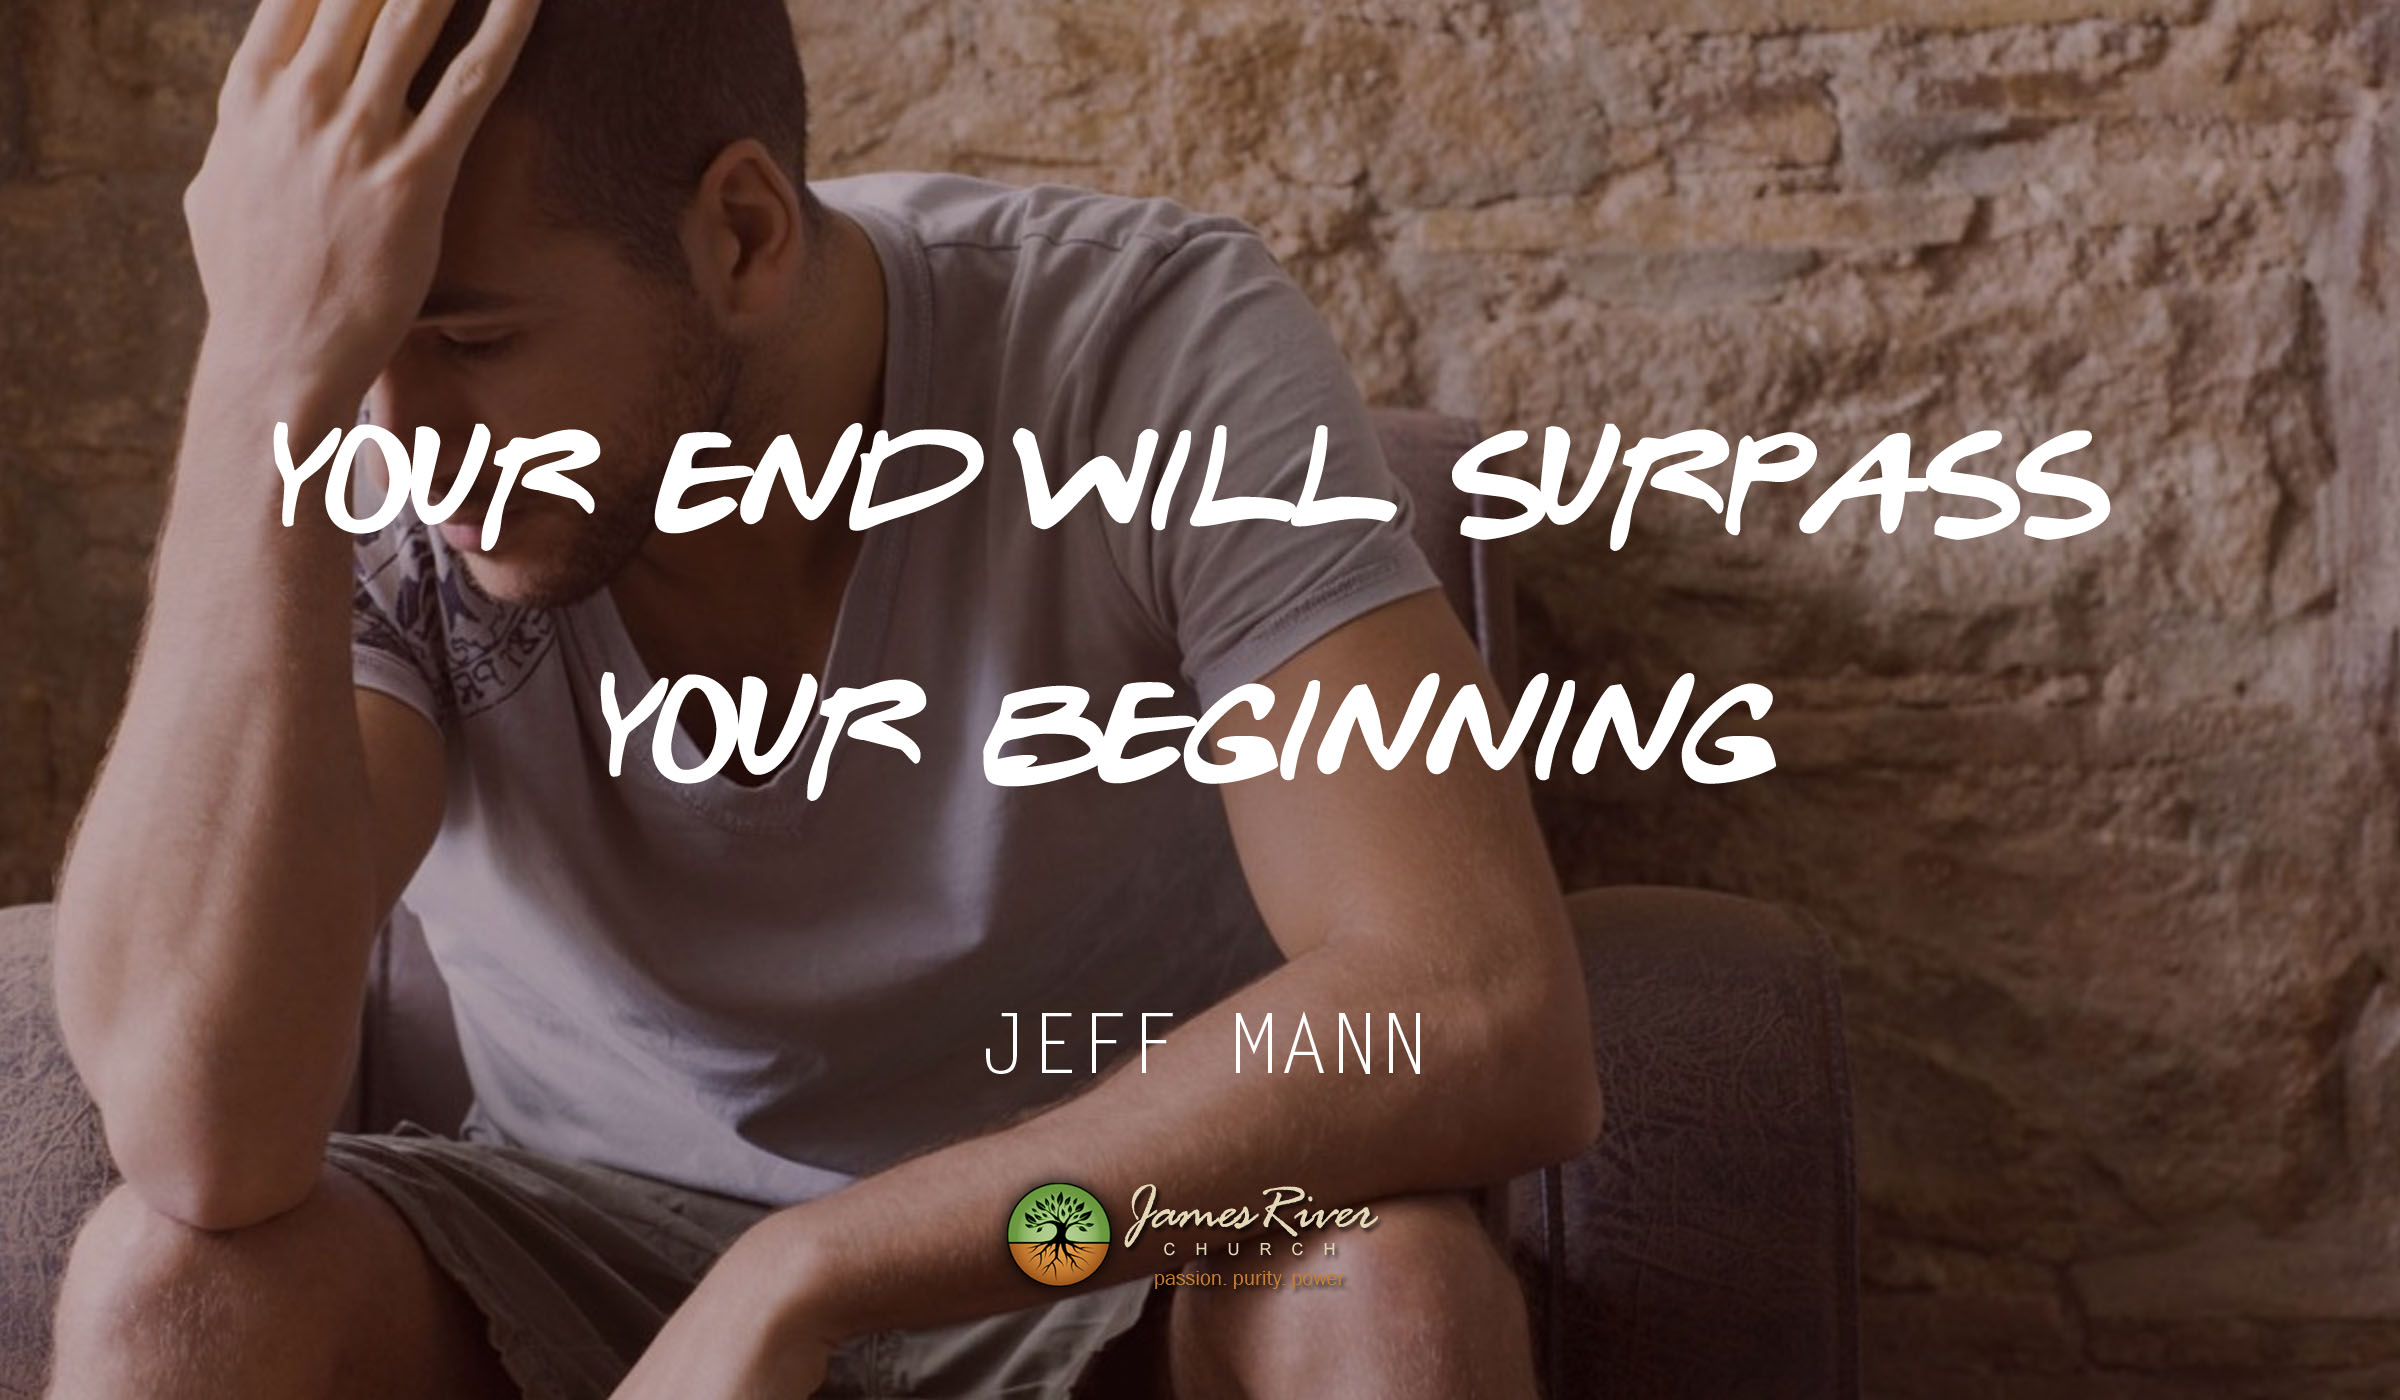 Your End Will Surpass Your Beginning